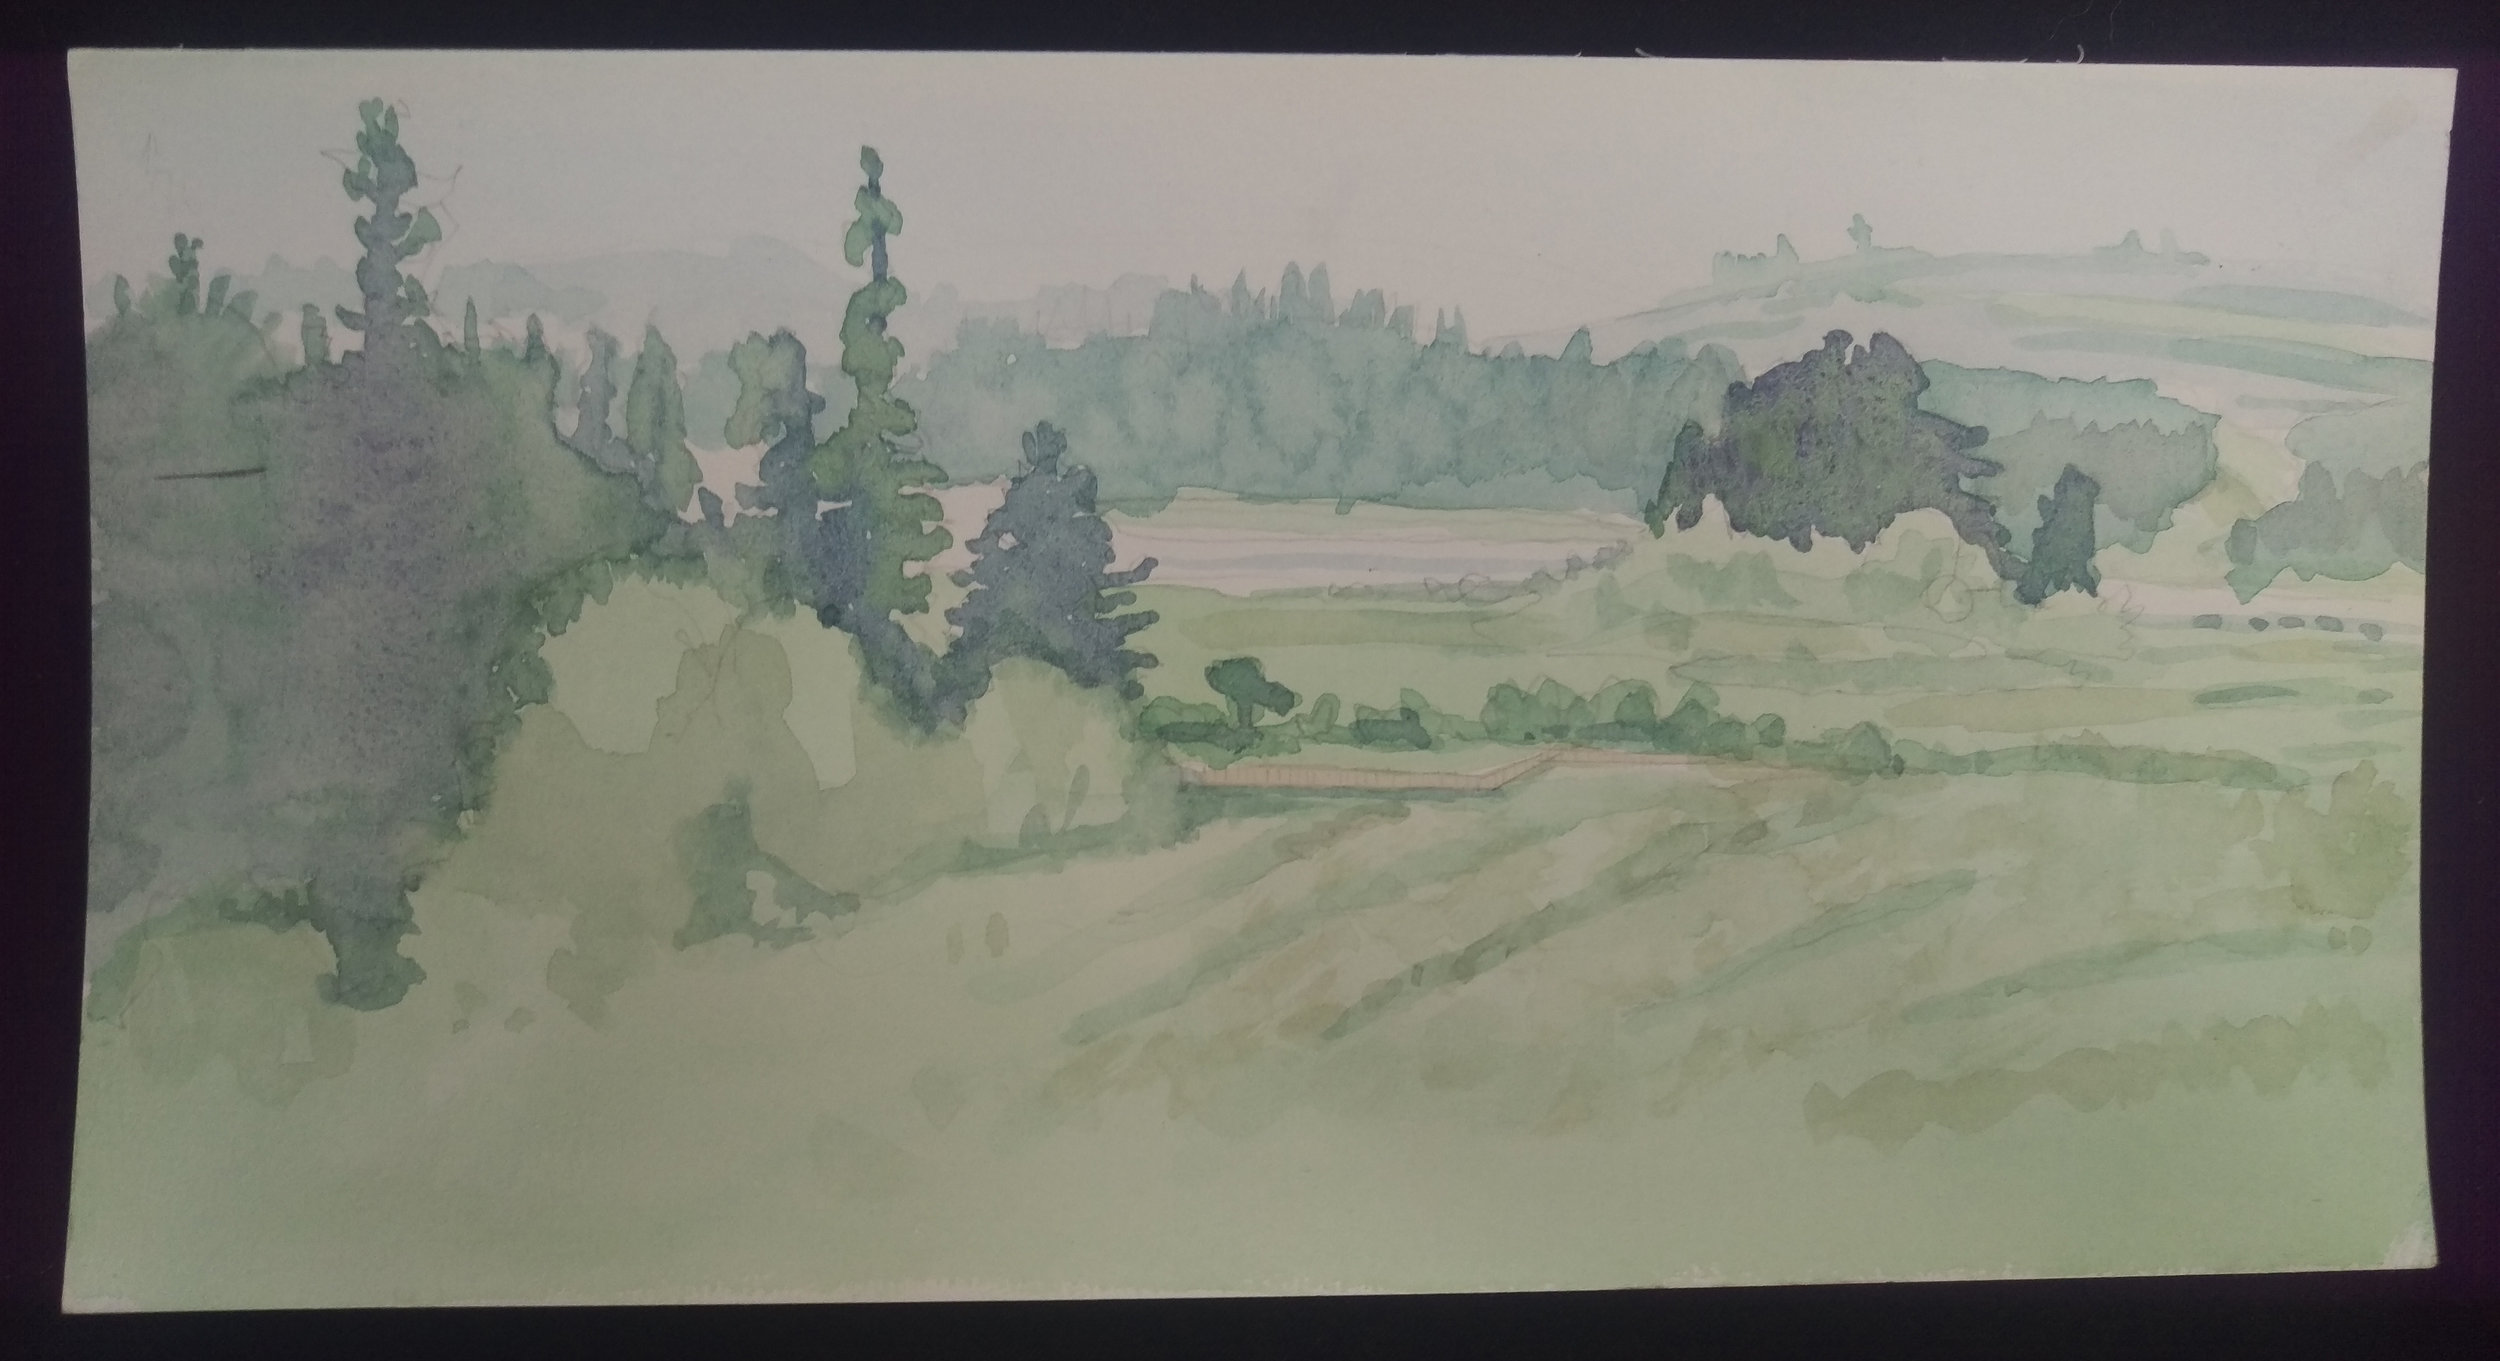 Mt. St. Helens in the Mist - Watercolor on paper